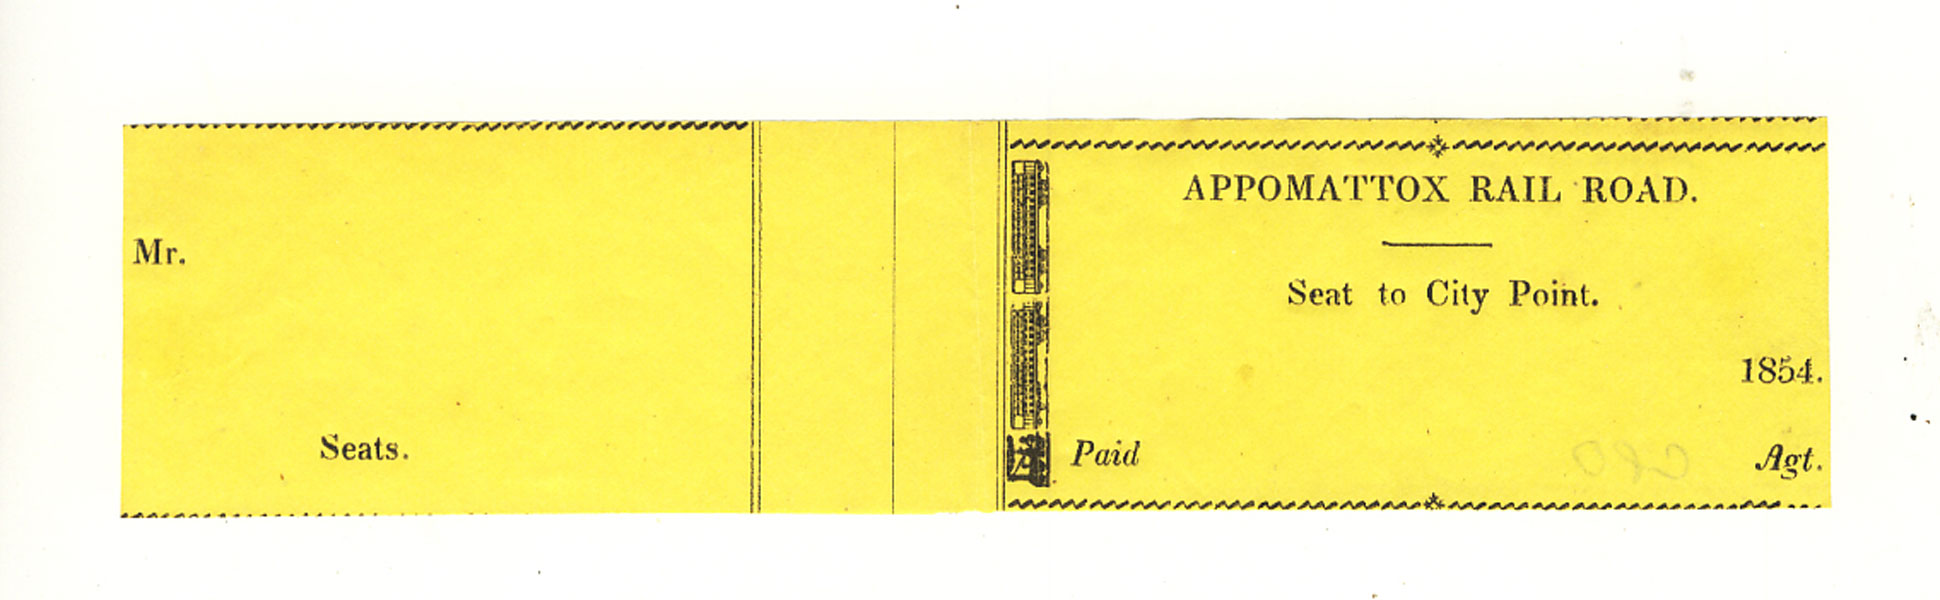 Appomattox Railroad Ticket by Appomattox Railroad Company